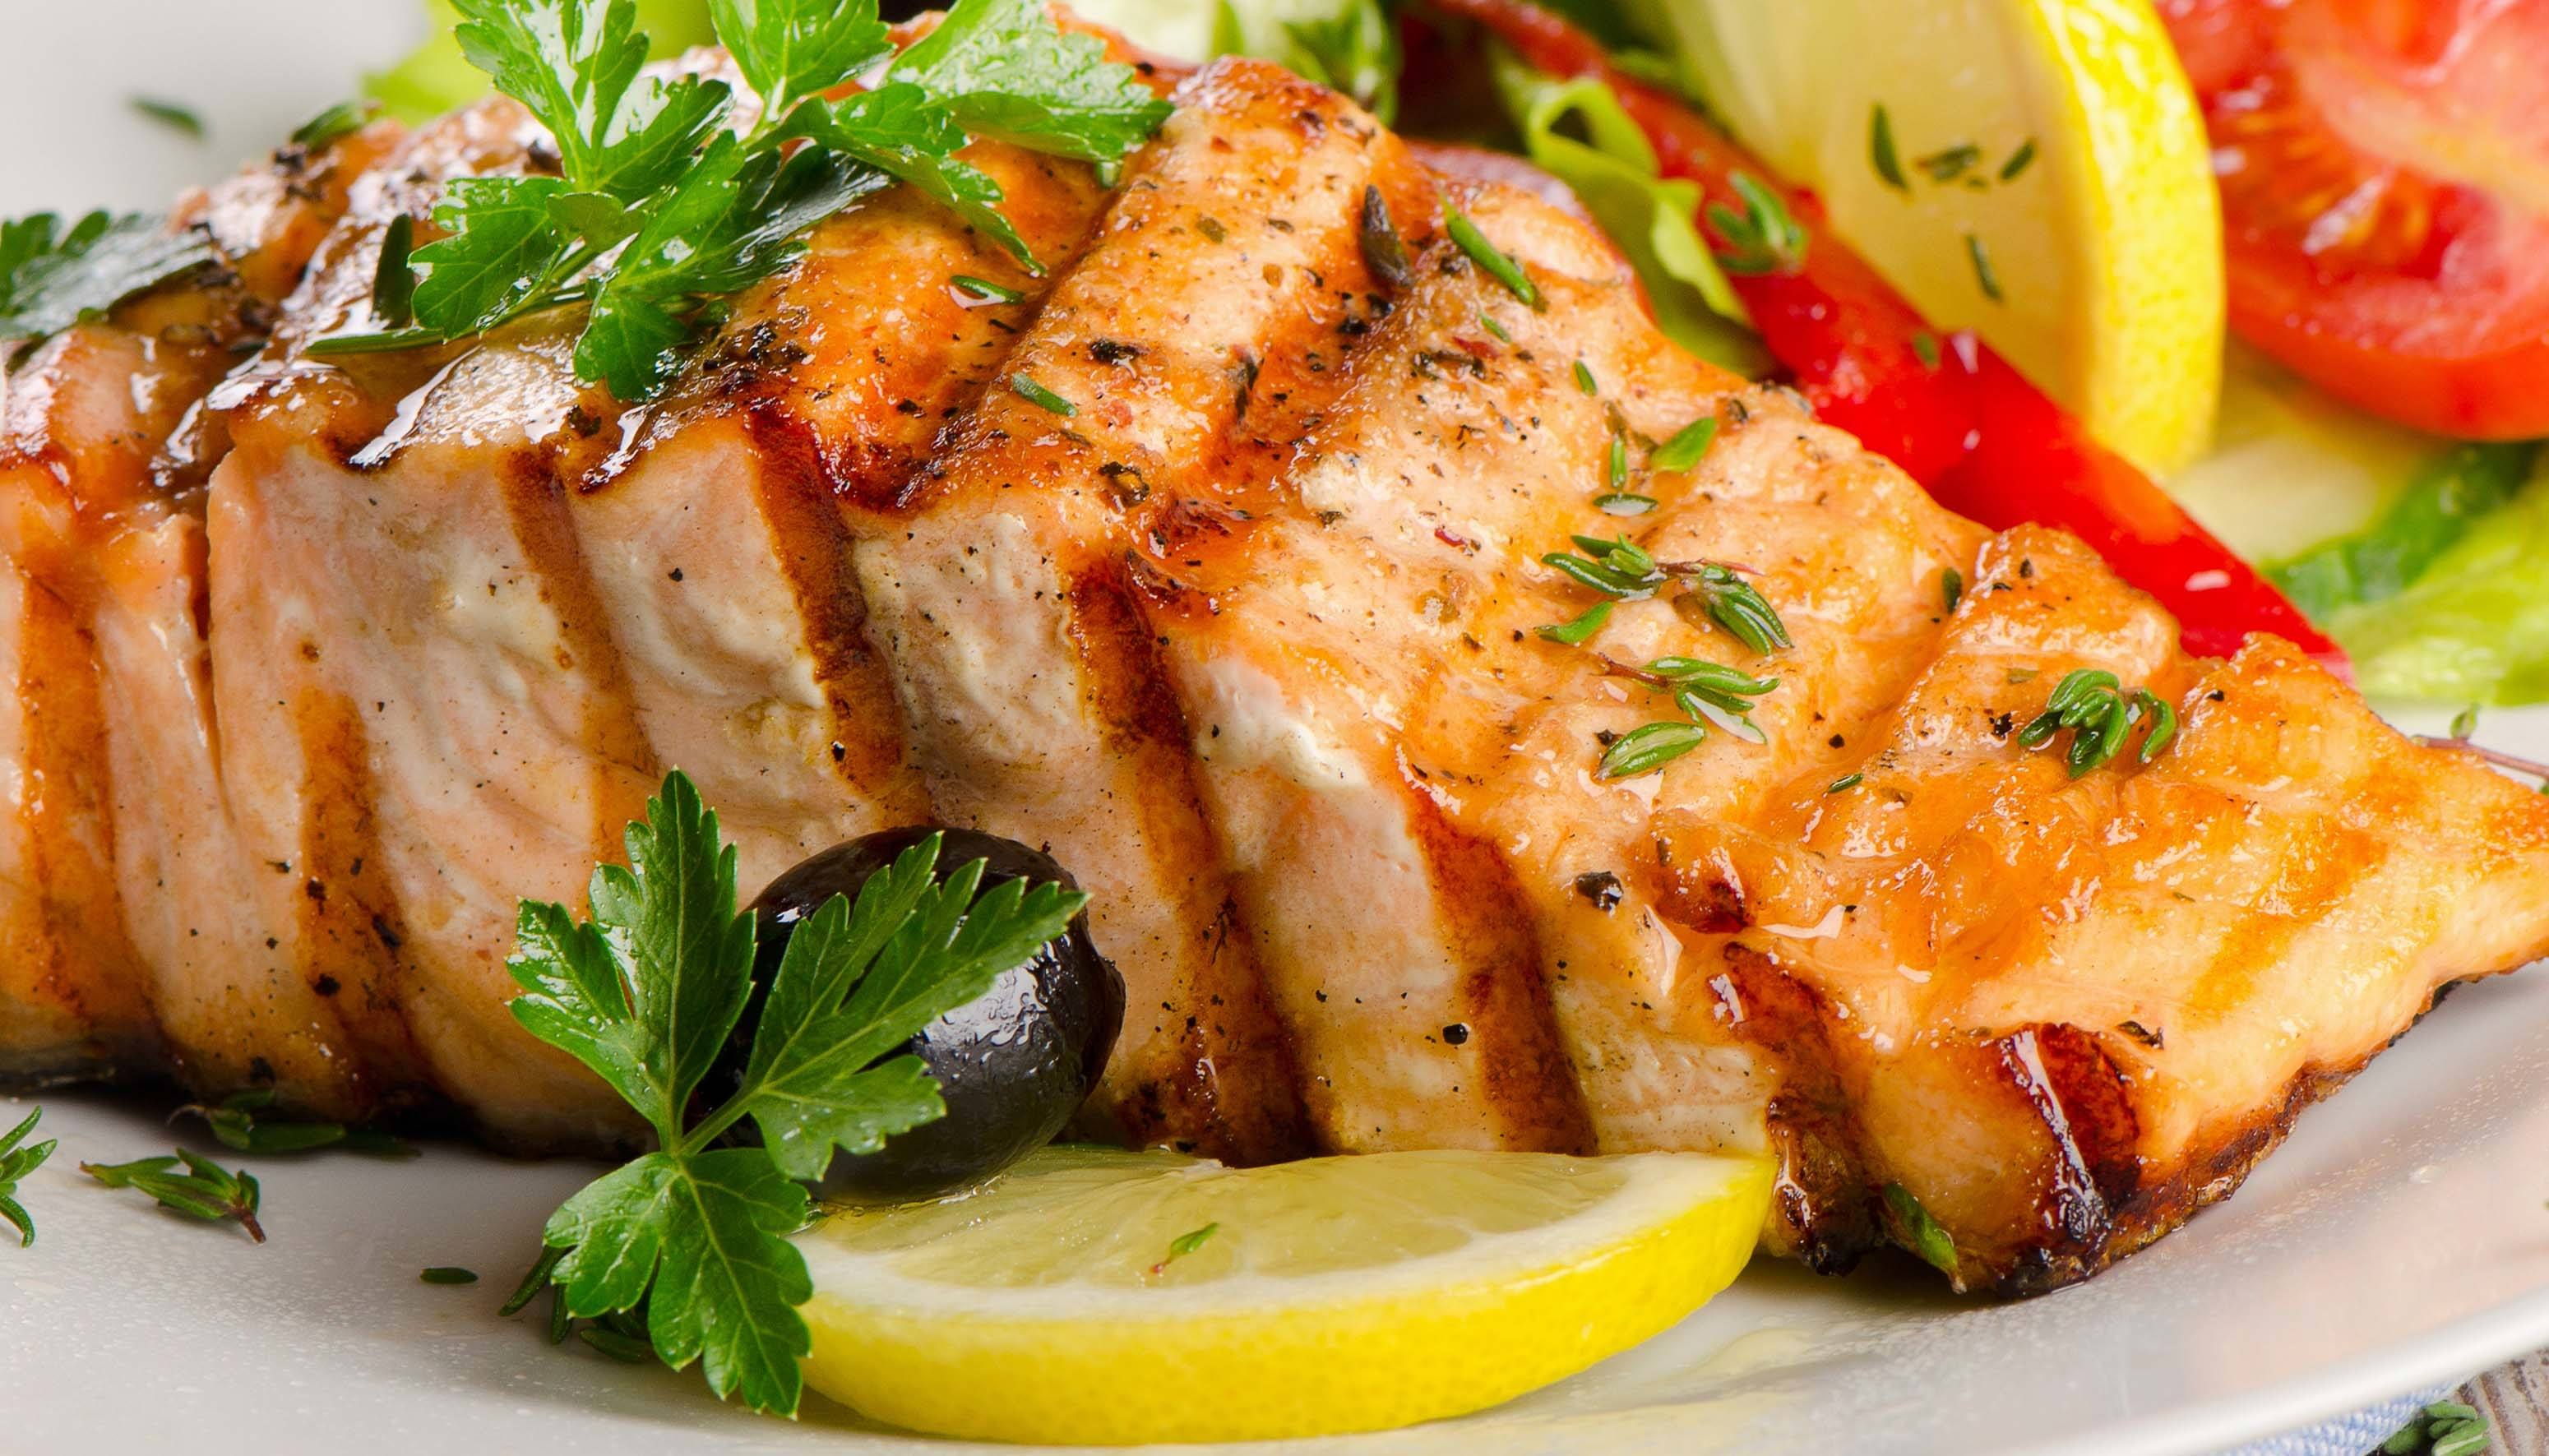 Summertime Mediterranean Diet Recipes